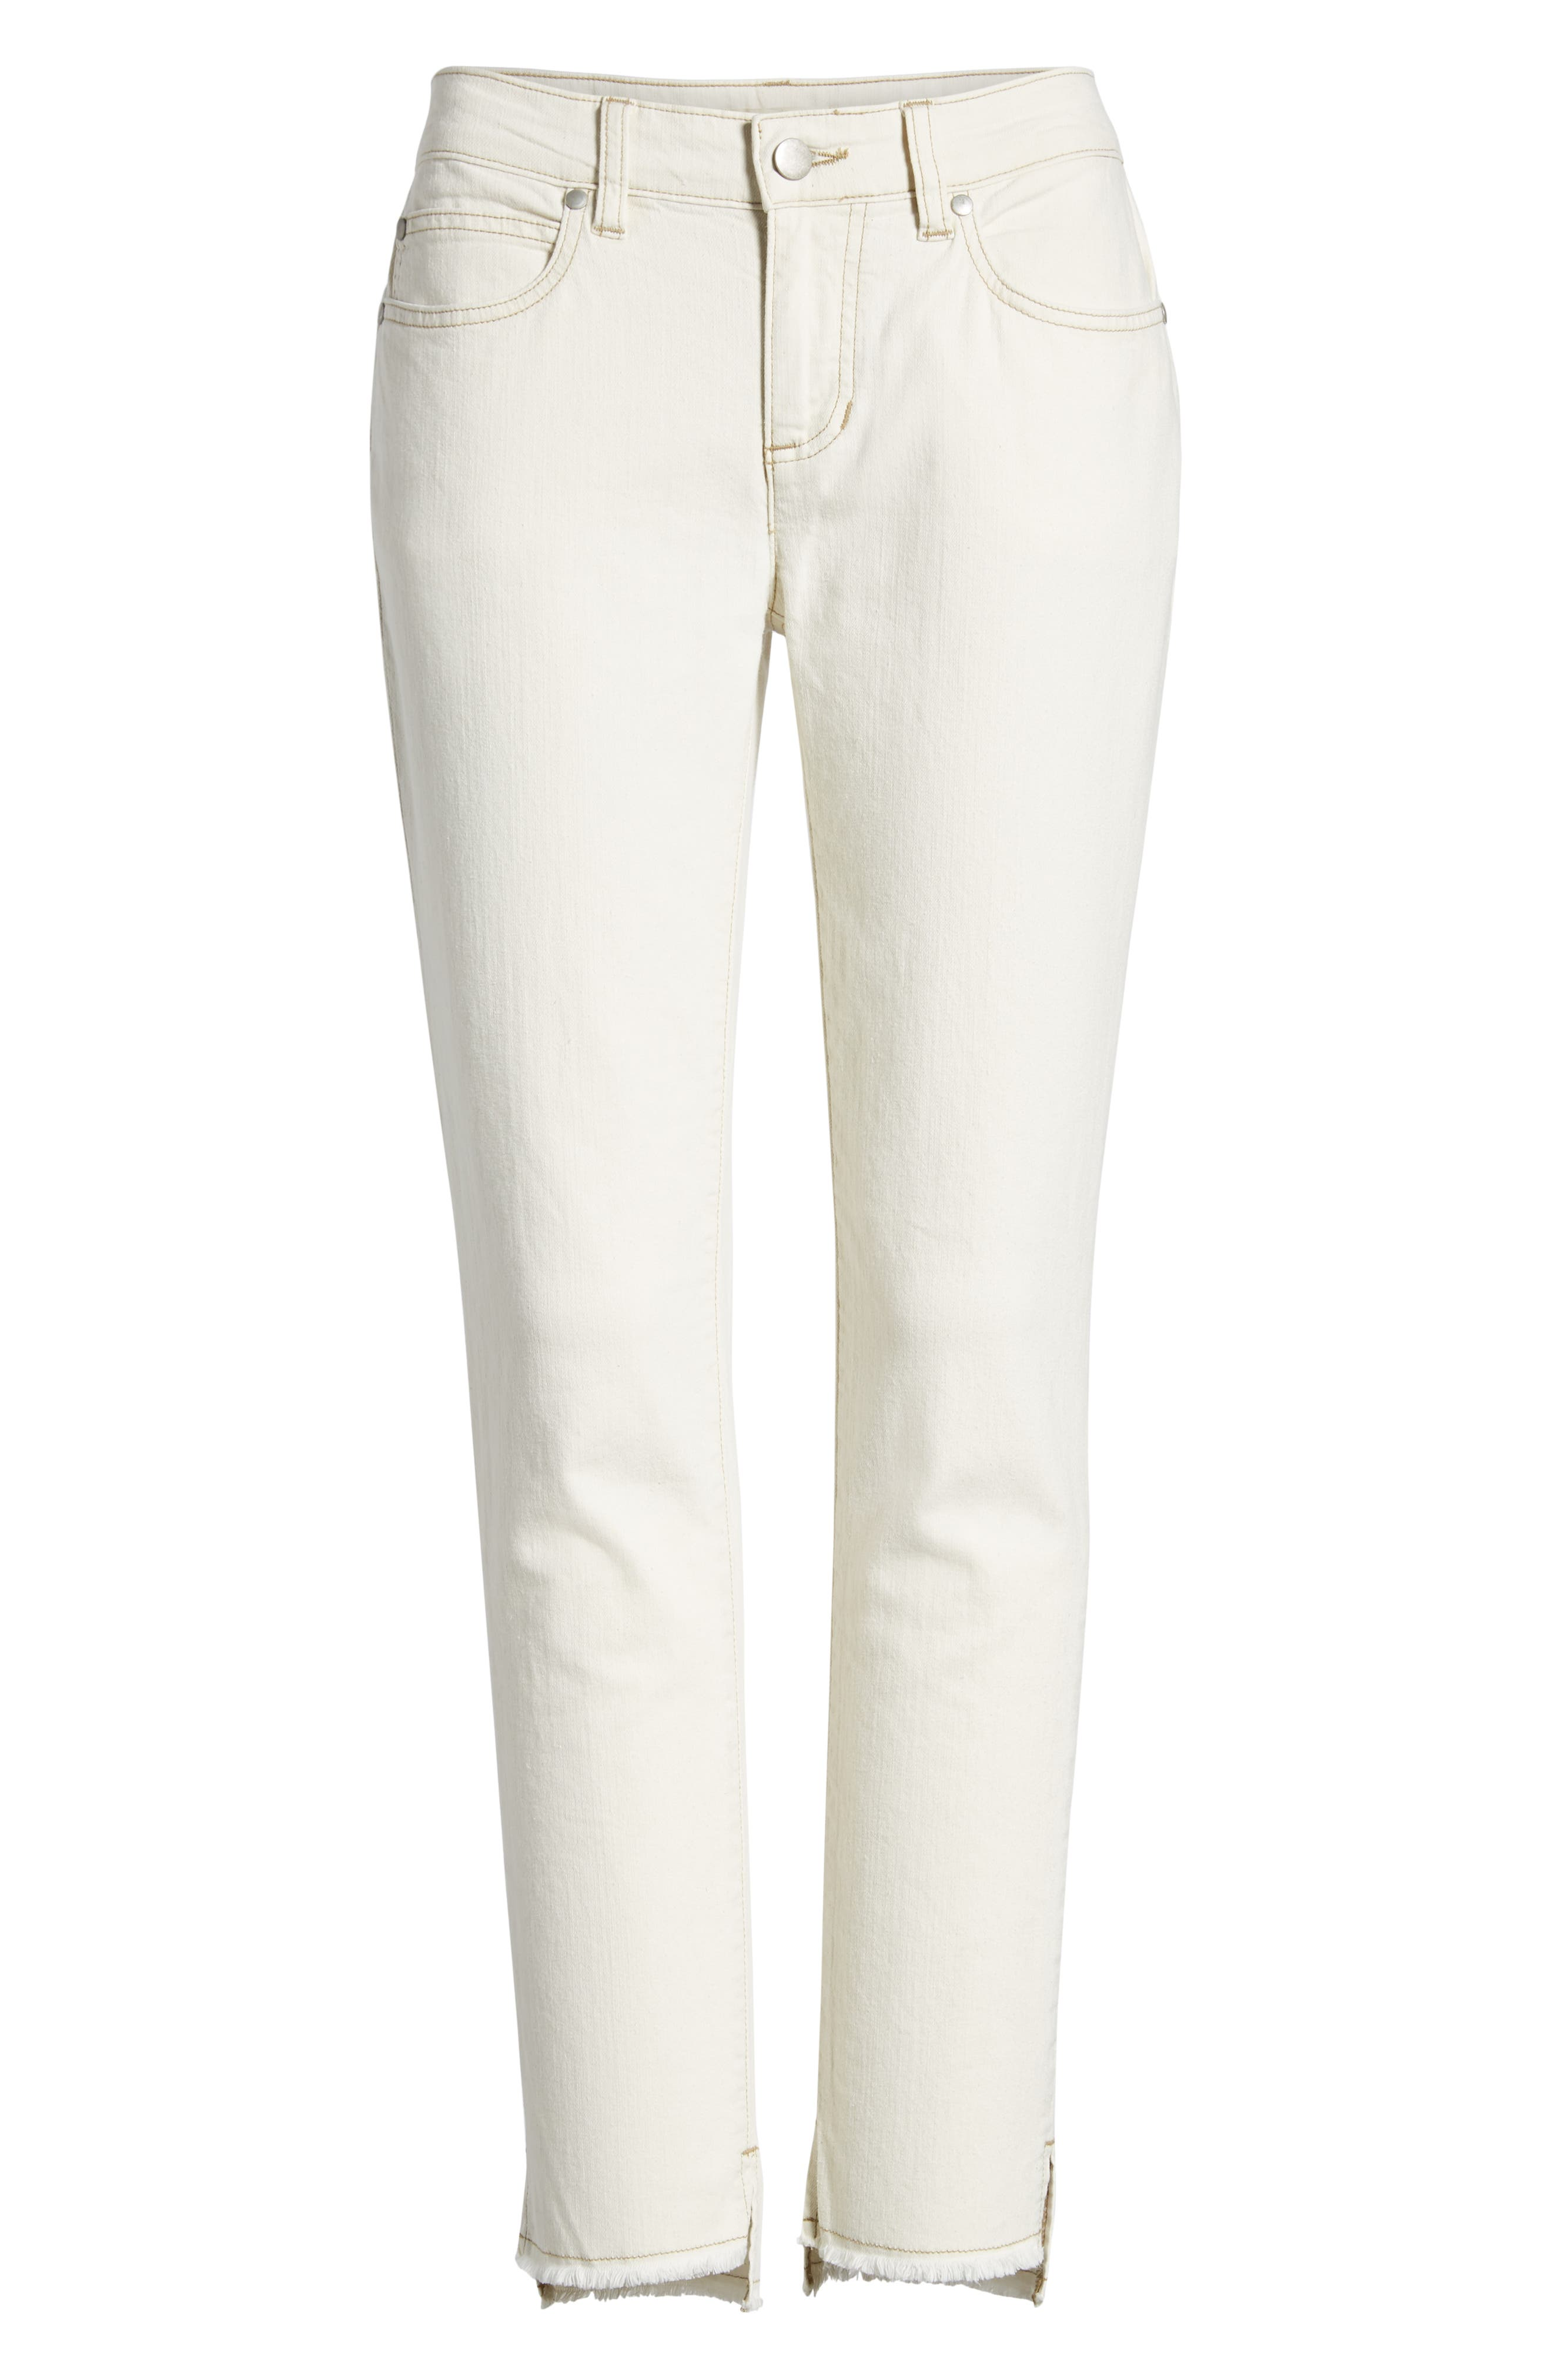 Stretch Organic Cotton Slim Ankle Jeans,                             Alternate thumbnail 6, color,                             Undyed Natural